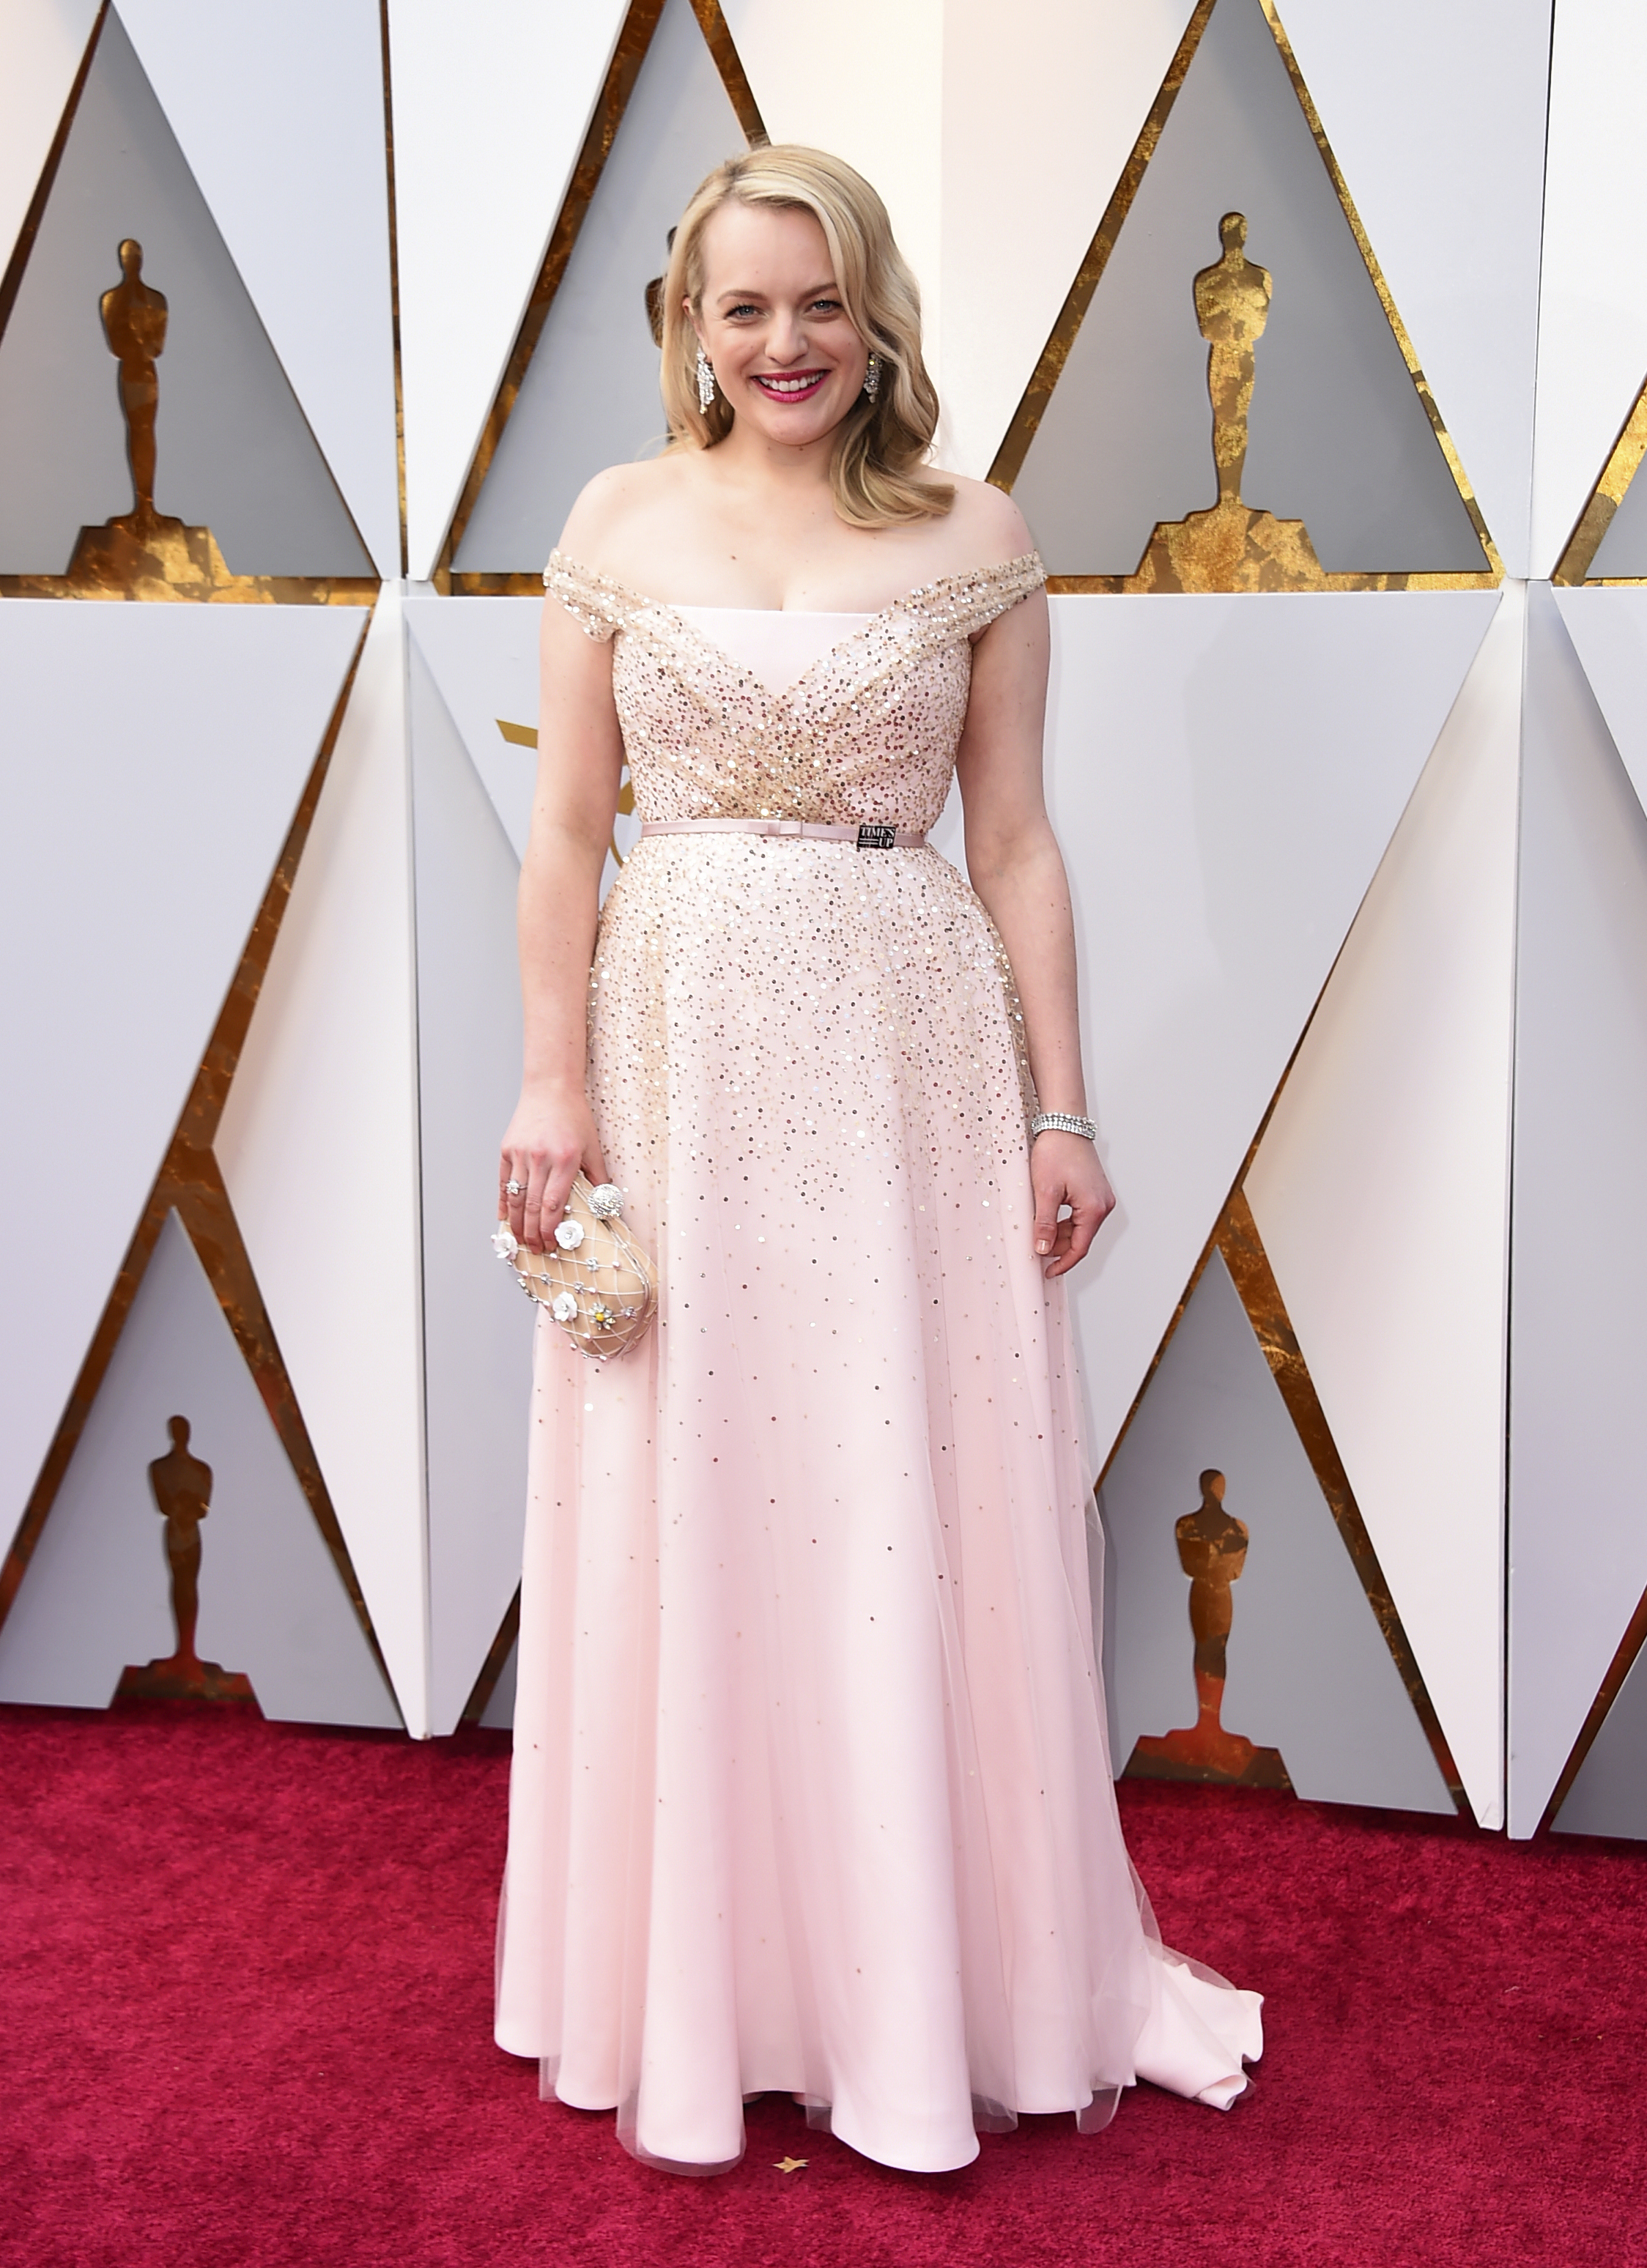 "<div class=""meta image-caption""><div class=""origin-logo origin-image none""><span>none</span></div><span class=""caption-text"">Elisabeth Moss arrives at the Oscars on Sunday, March 4, 2018, at the Dolby Theatre in Los Angeles. (Jordan Strauss/Invision/AP)</span></div>"